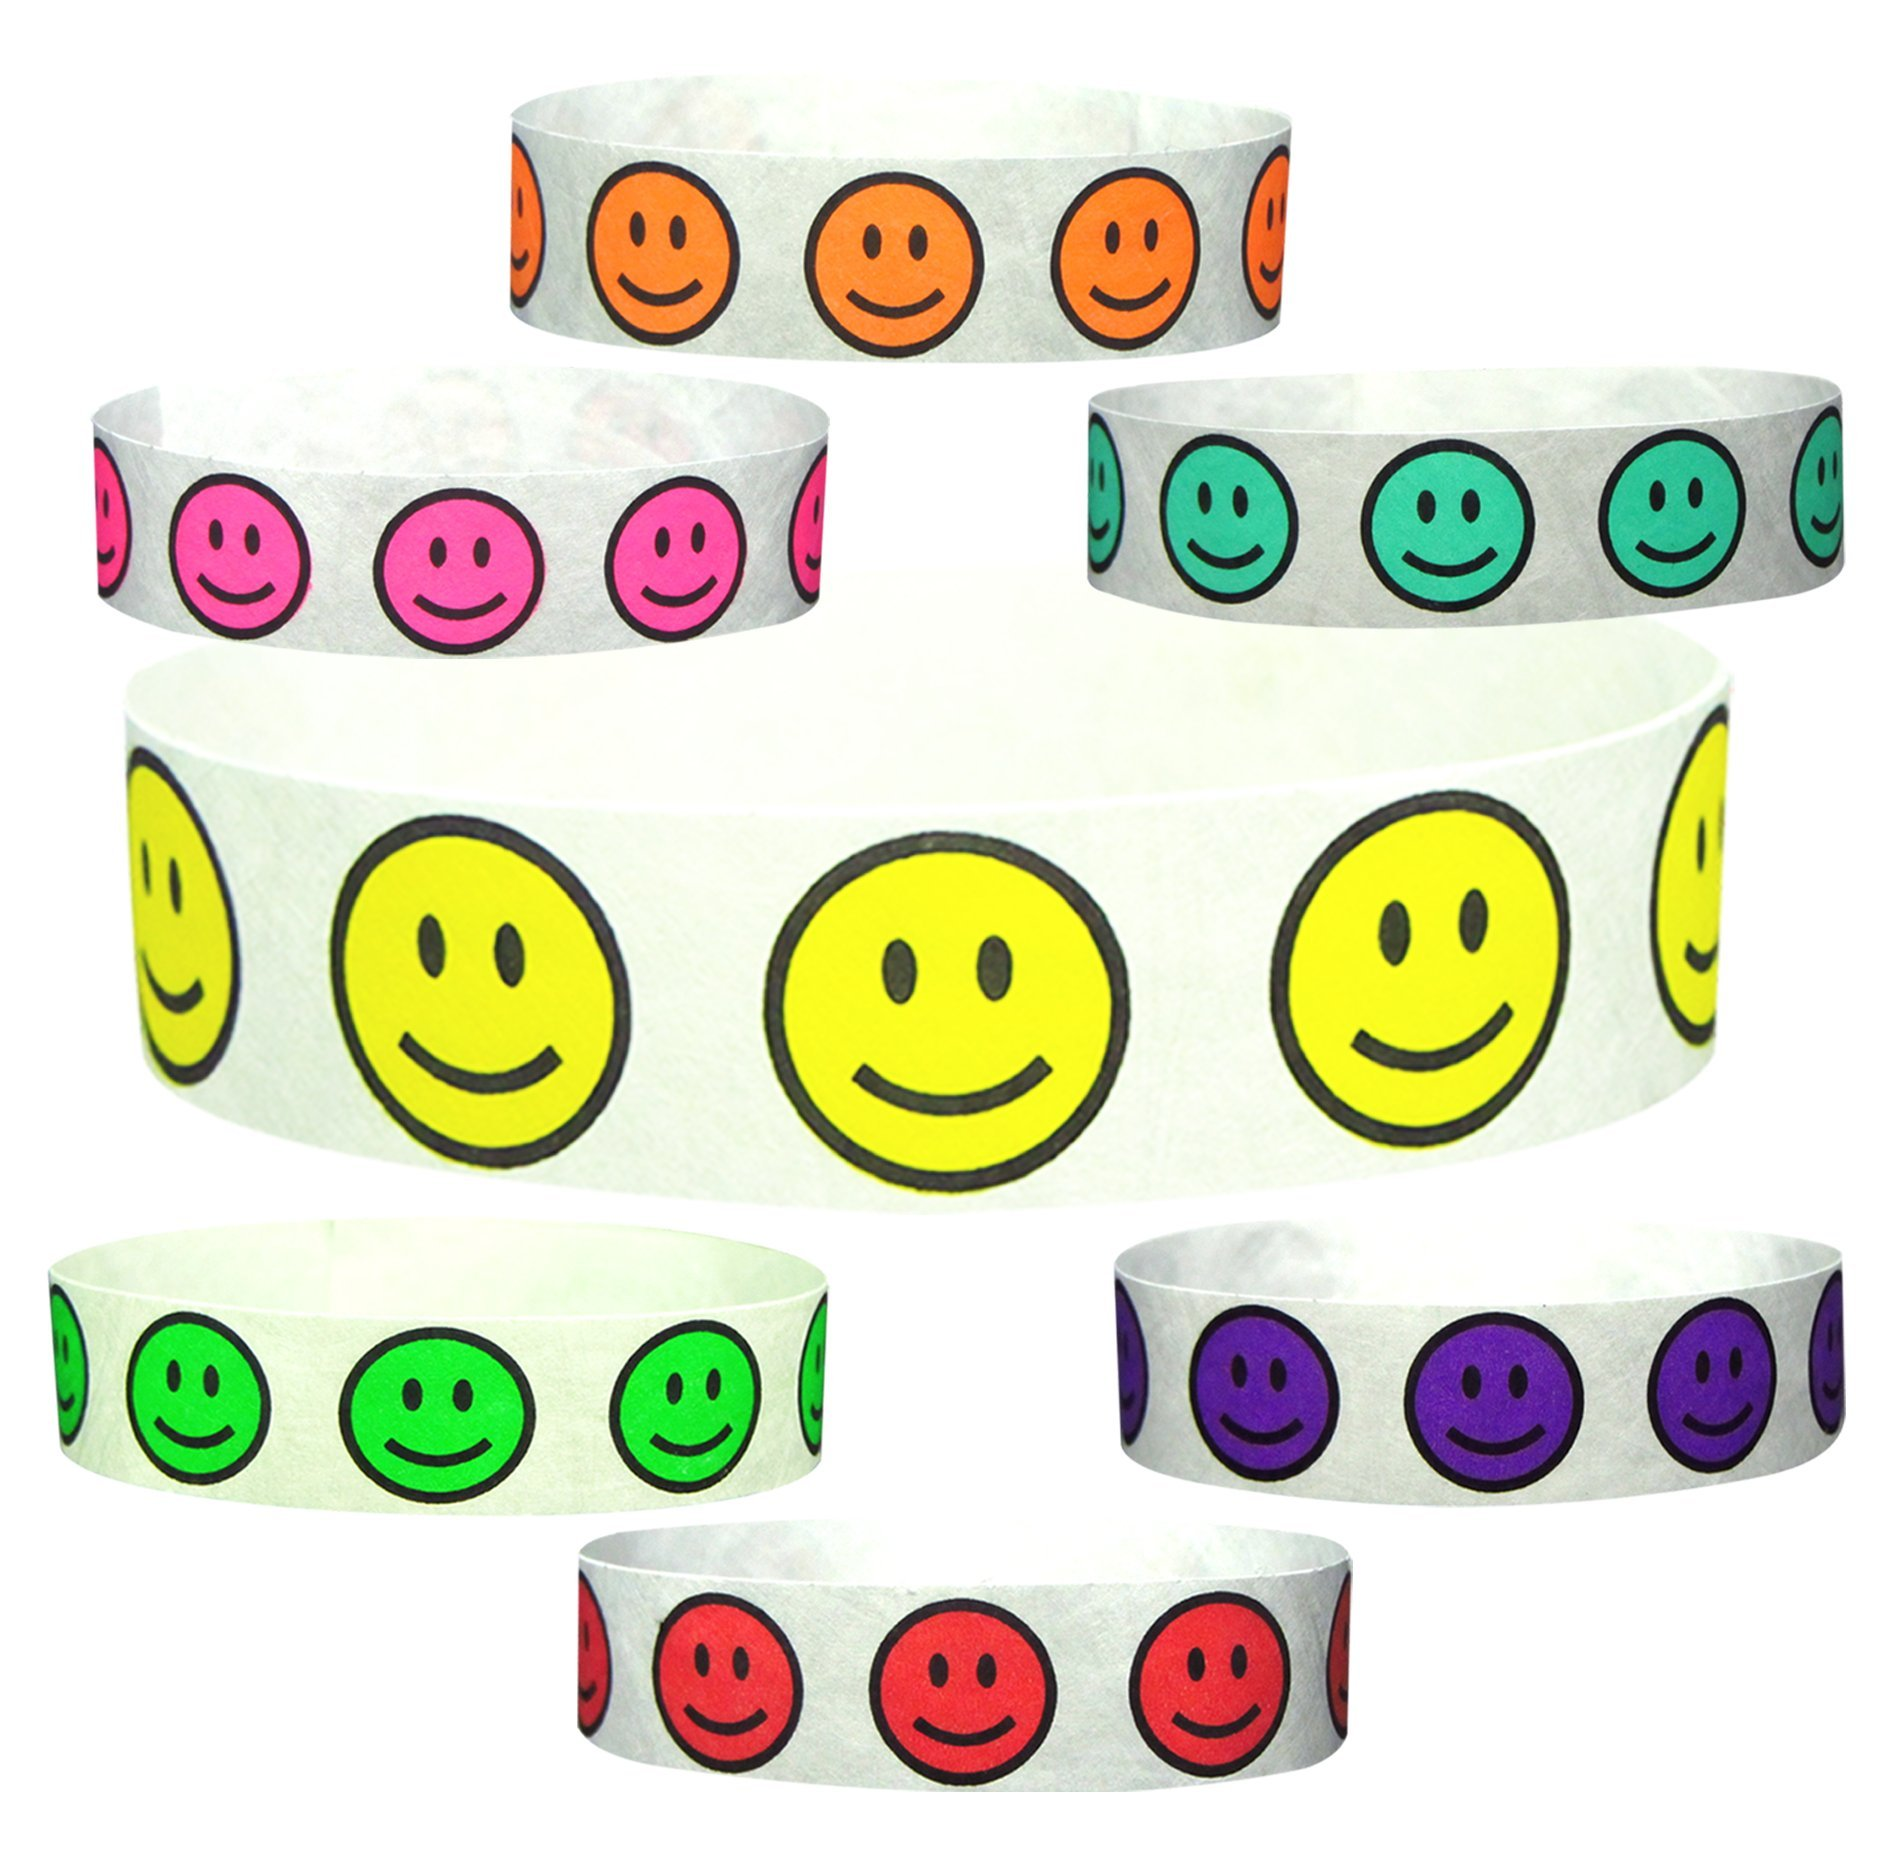 "Goldistock 3/4"" Tyvek Wristbands Happy Smiley Face- 350 Ct. Variety Pack- 50/Color- Neon: Yellow, Orange,Green, Pink, Aqua, Purple & Red"